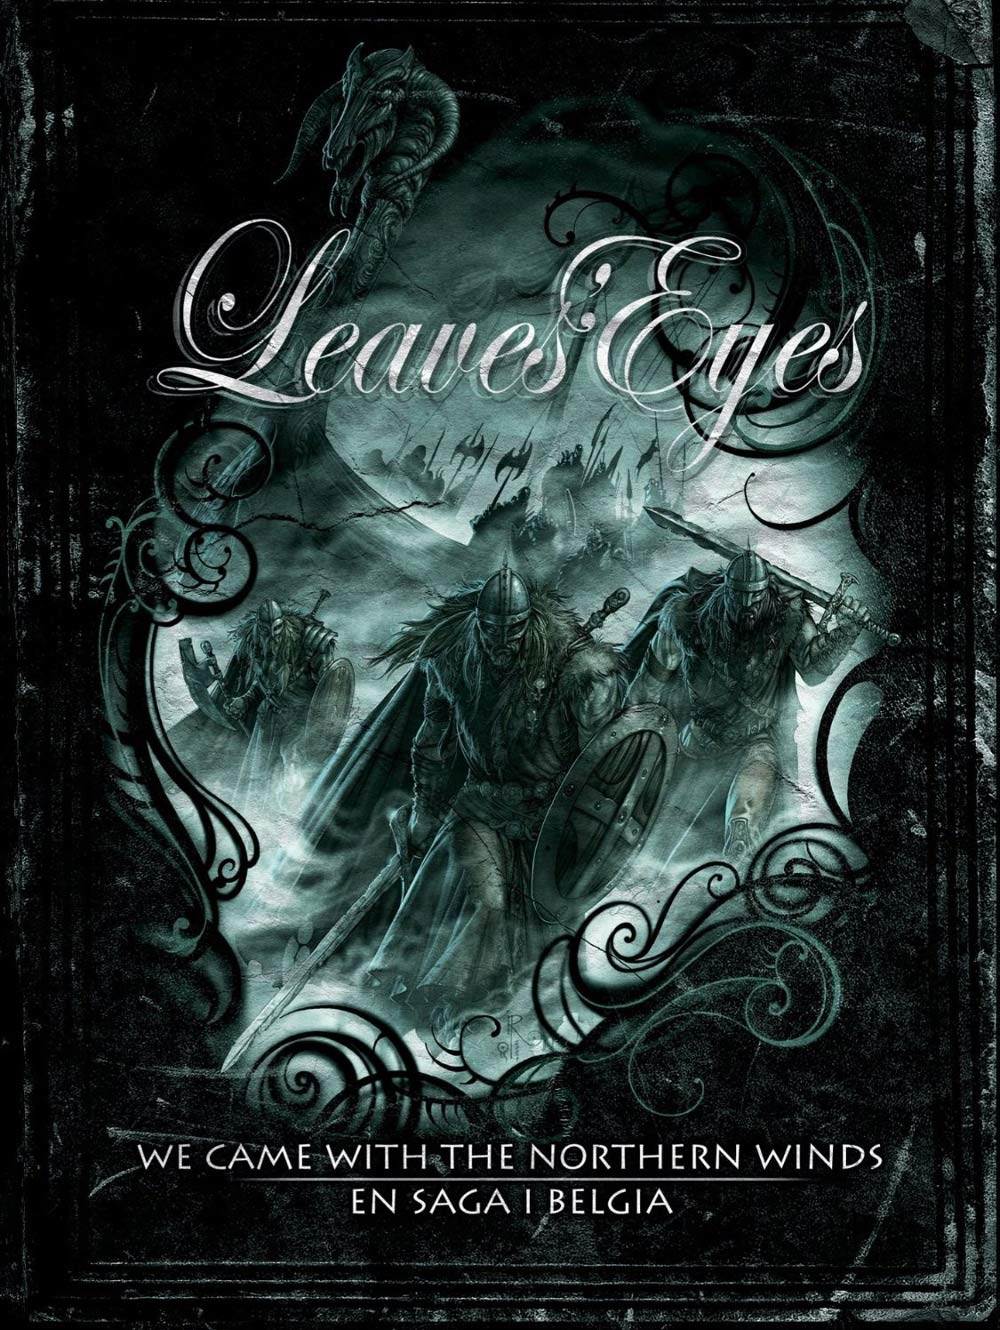 Leaves' Eyes - We Came with the Northern Winds / En saga i Belgia